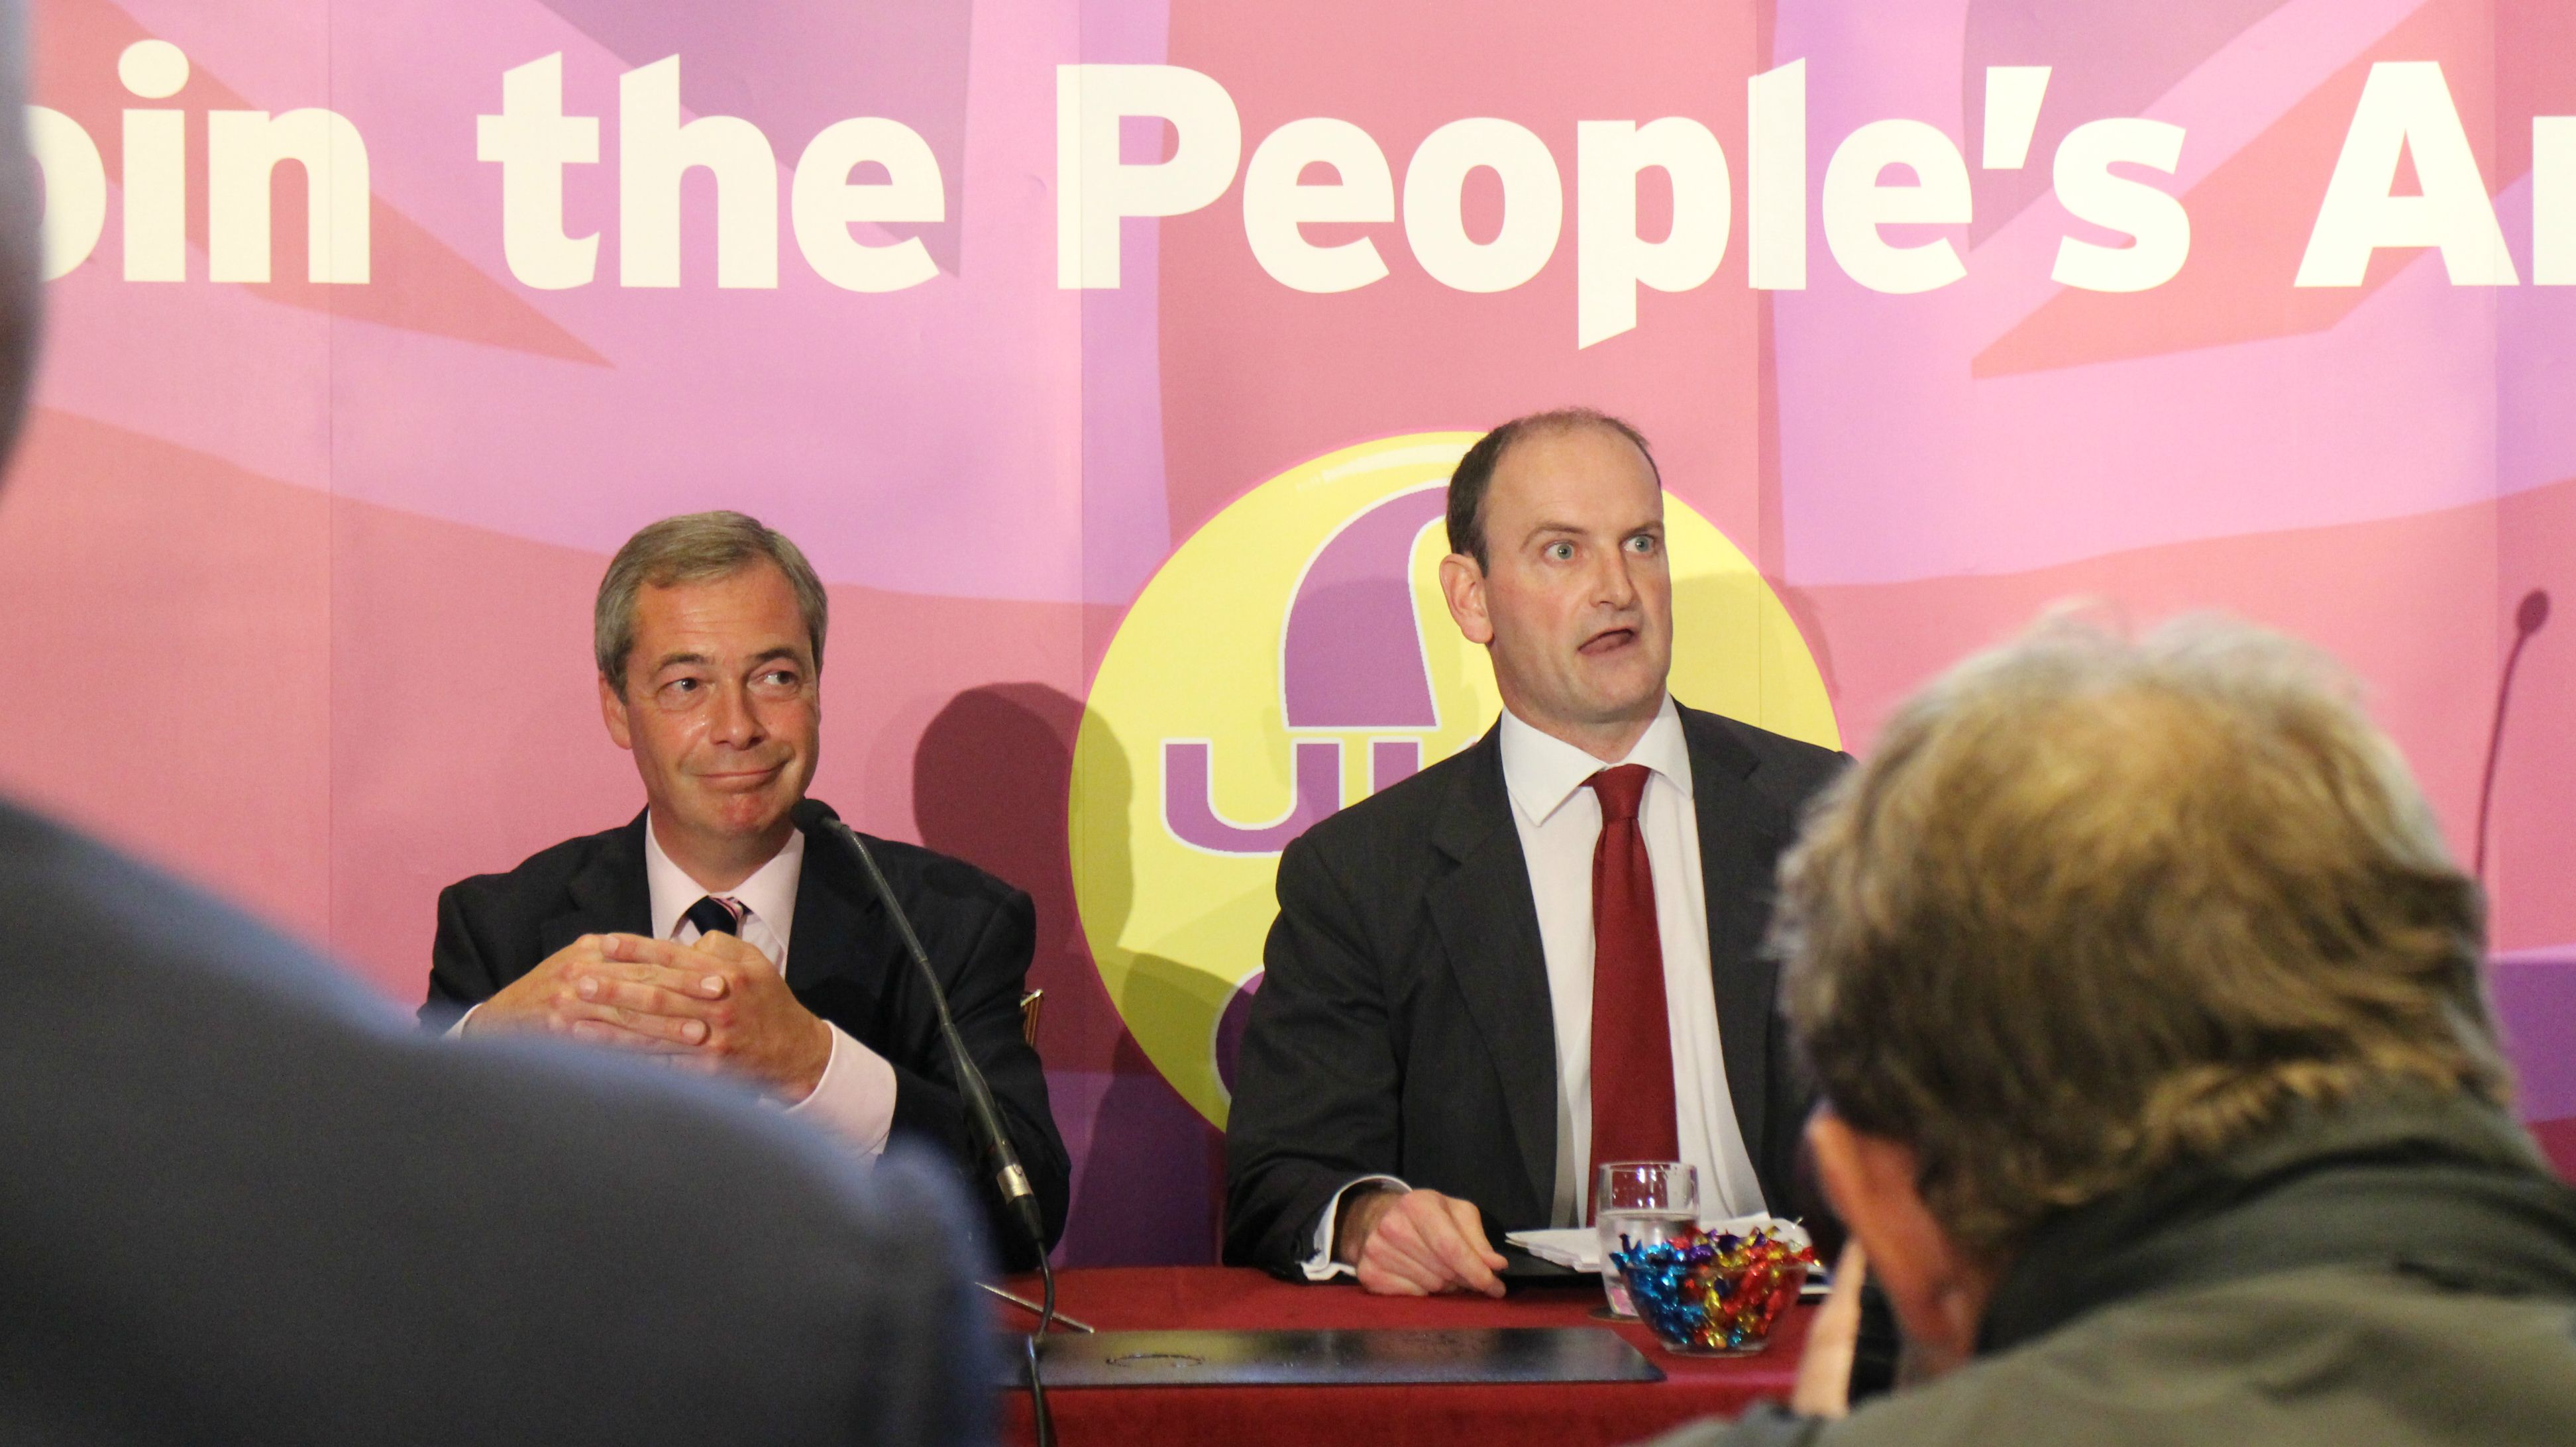 The Conservative Party is Dead, Long Live the Conservative Party: UKIP